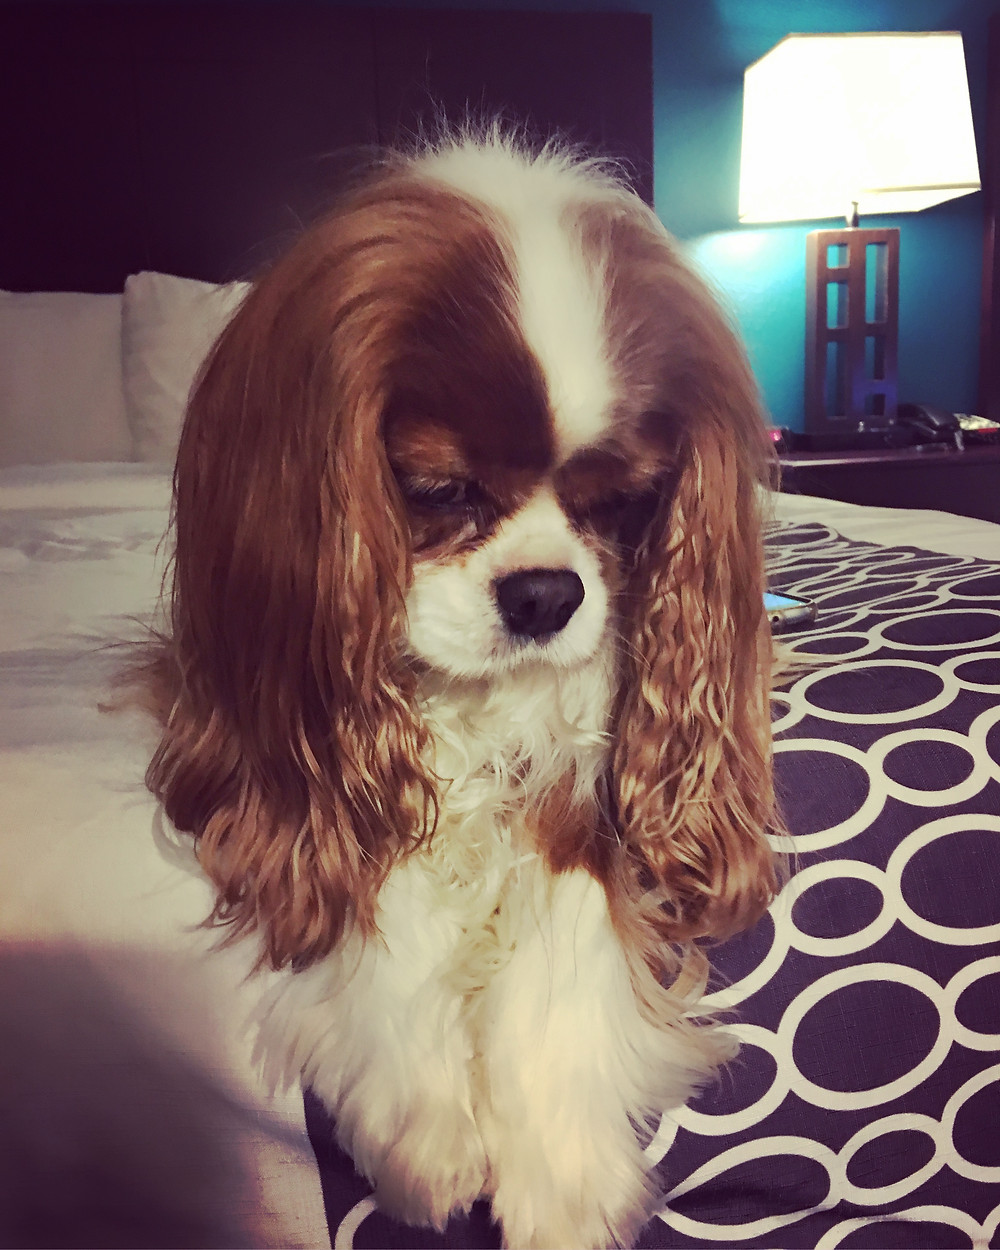 Our lovely Al, Cavalier King Charles Spaniel from Wales